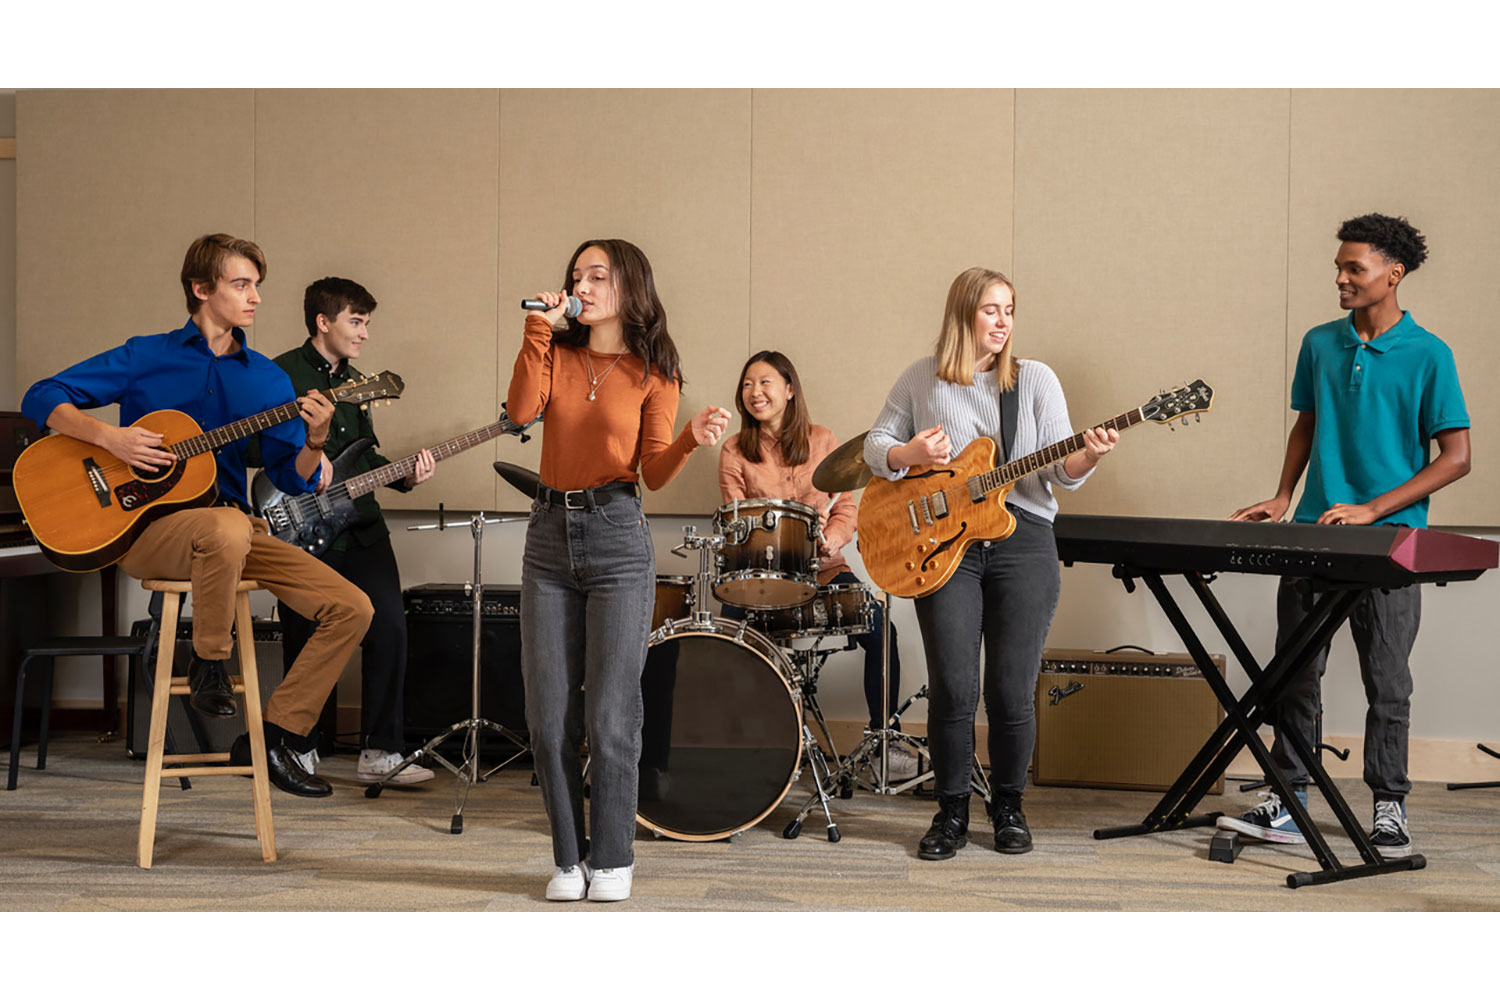 Interlochen has recently completed their new complex. A key component of the new complex is a state-of-the-art recording/teaching studio complex developed by WSDG. Students band playing.